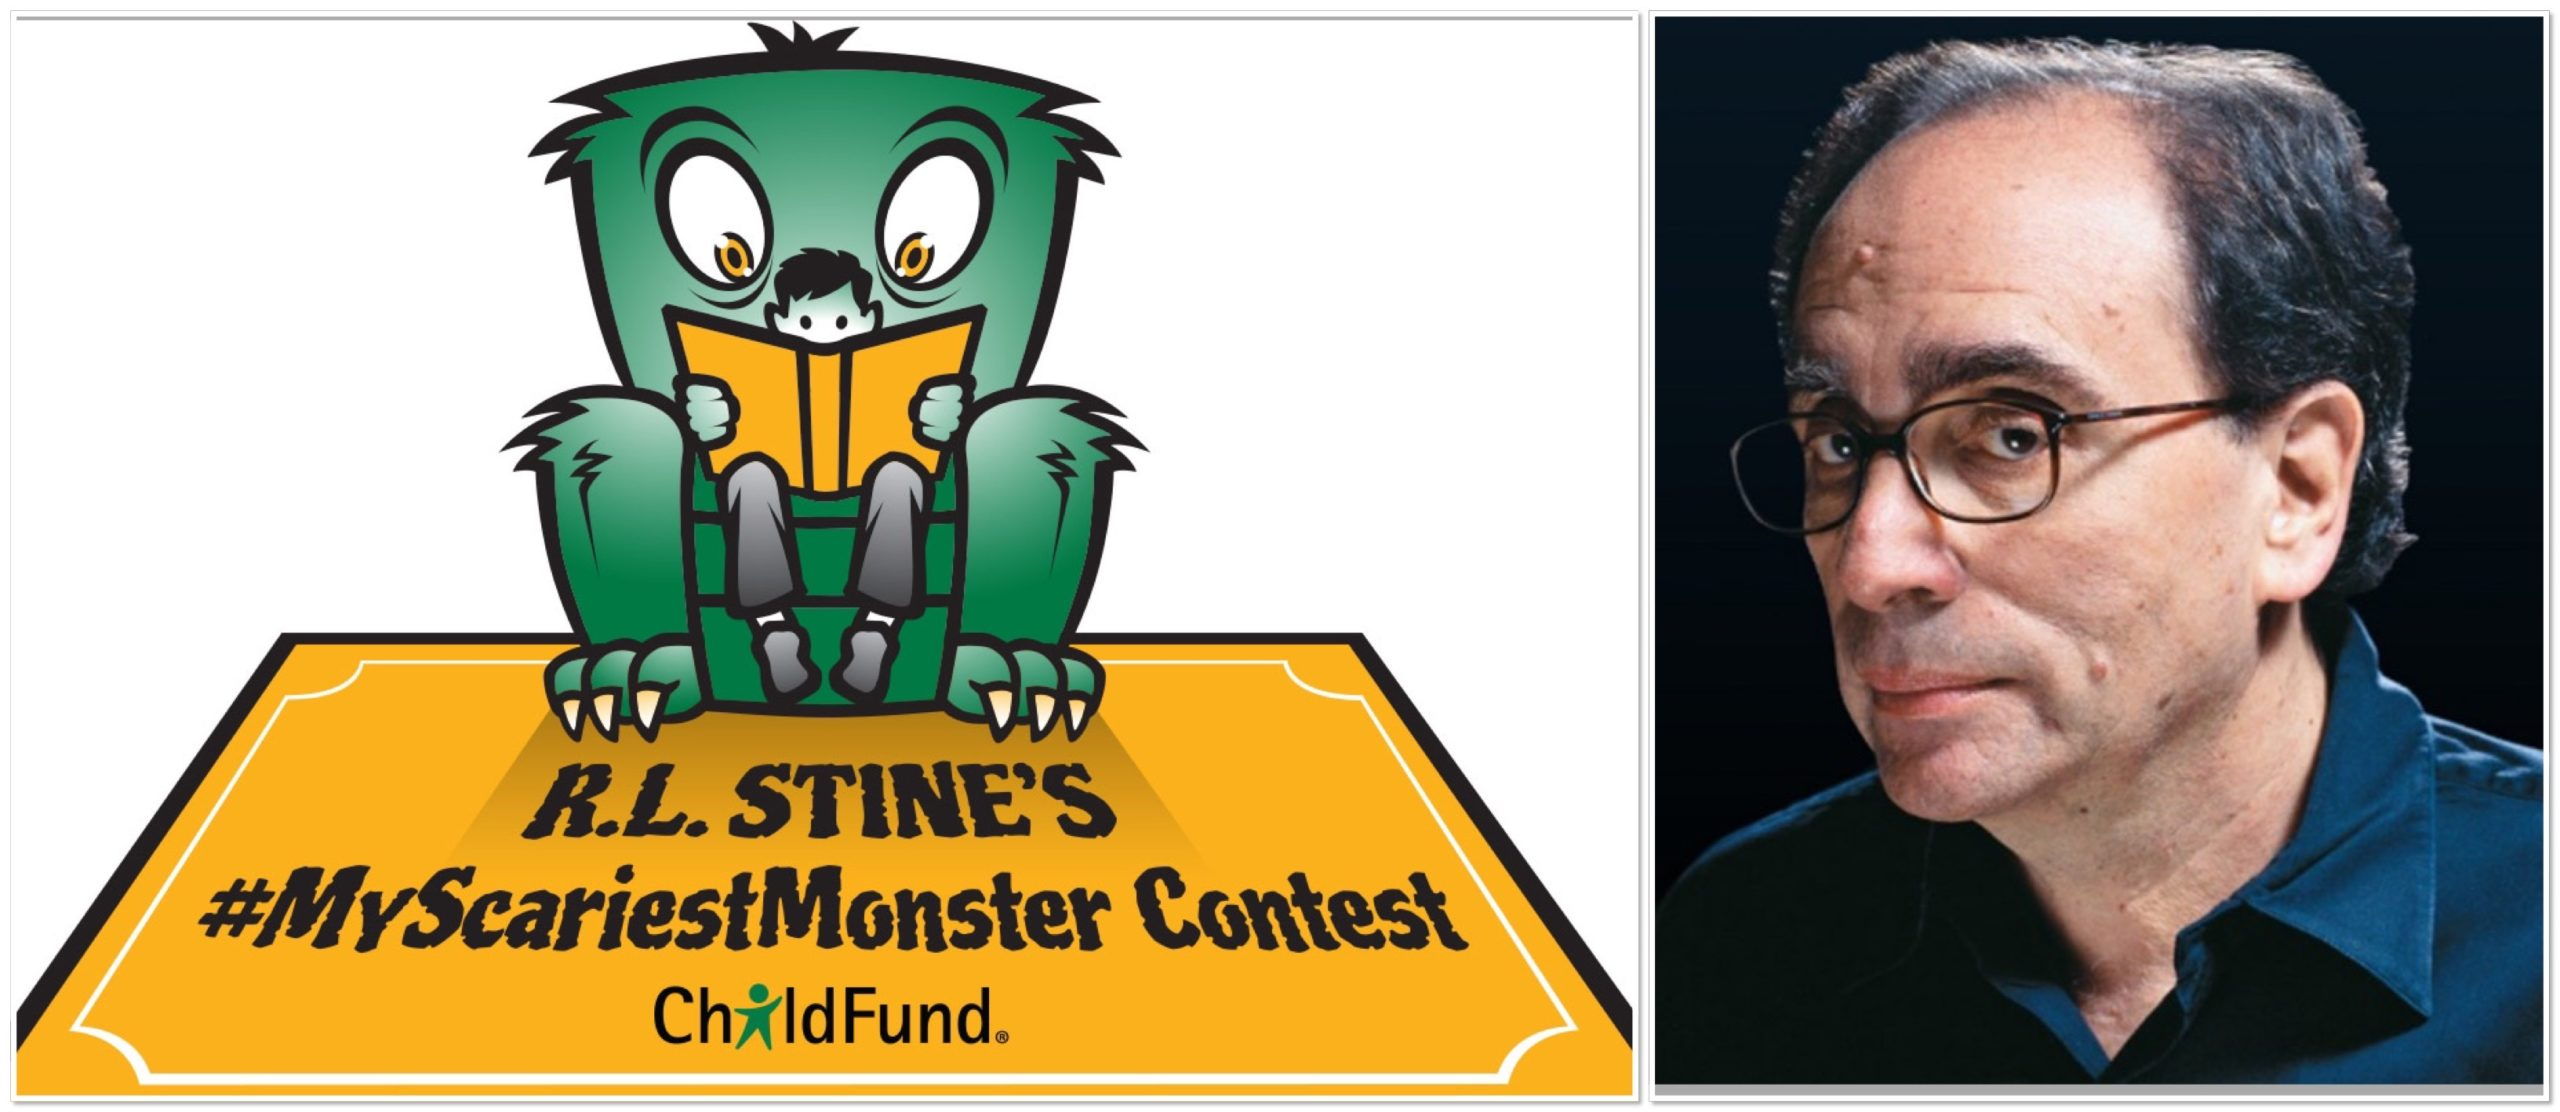 Help Kids Explore Writing With A Scary-Creative Contest